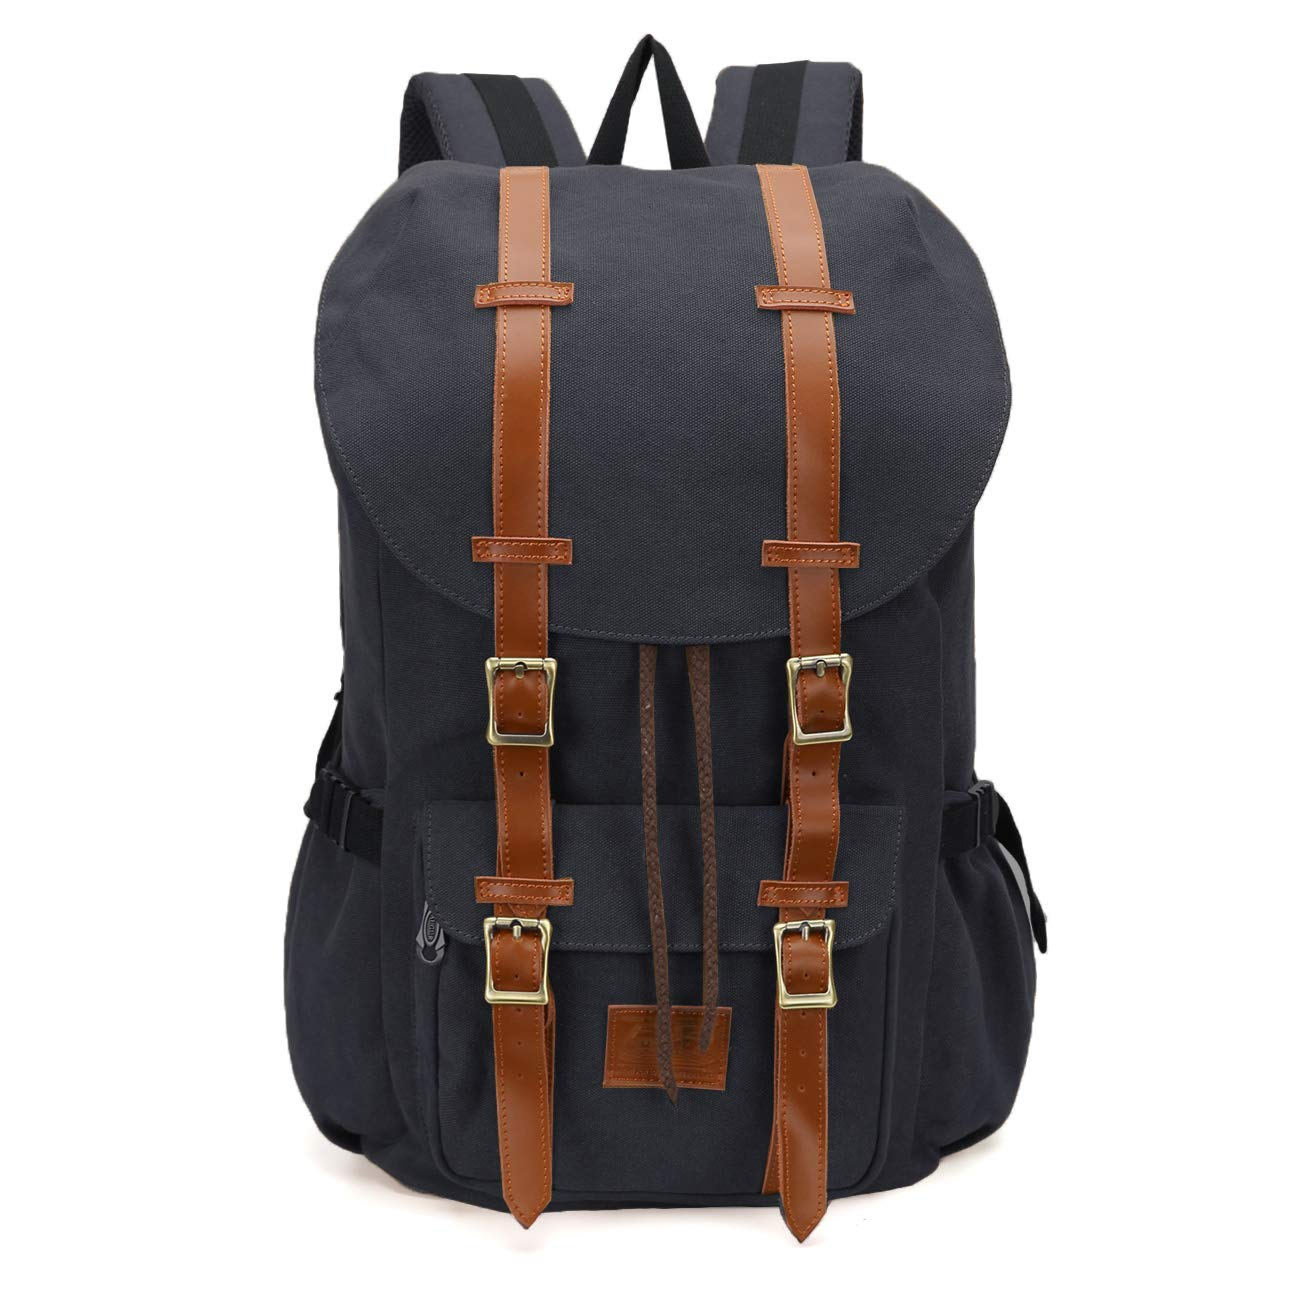 ONEB Casual Laptop Canvas Backpack Unisex Vintage Leather School Bags Large Capacity Hiking Travel Rucksack Business Daypack (19 inches Black)